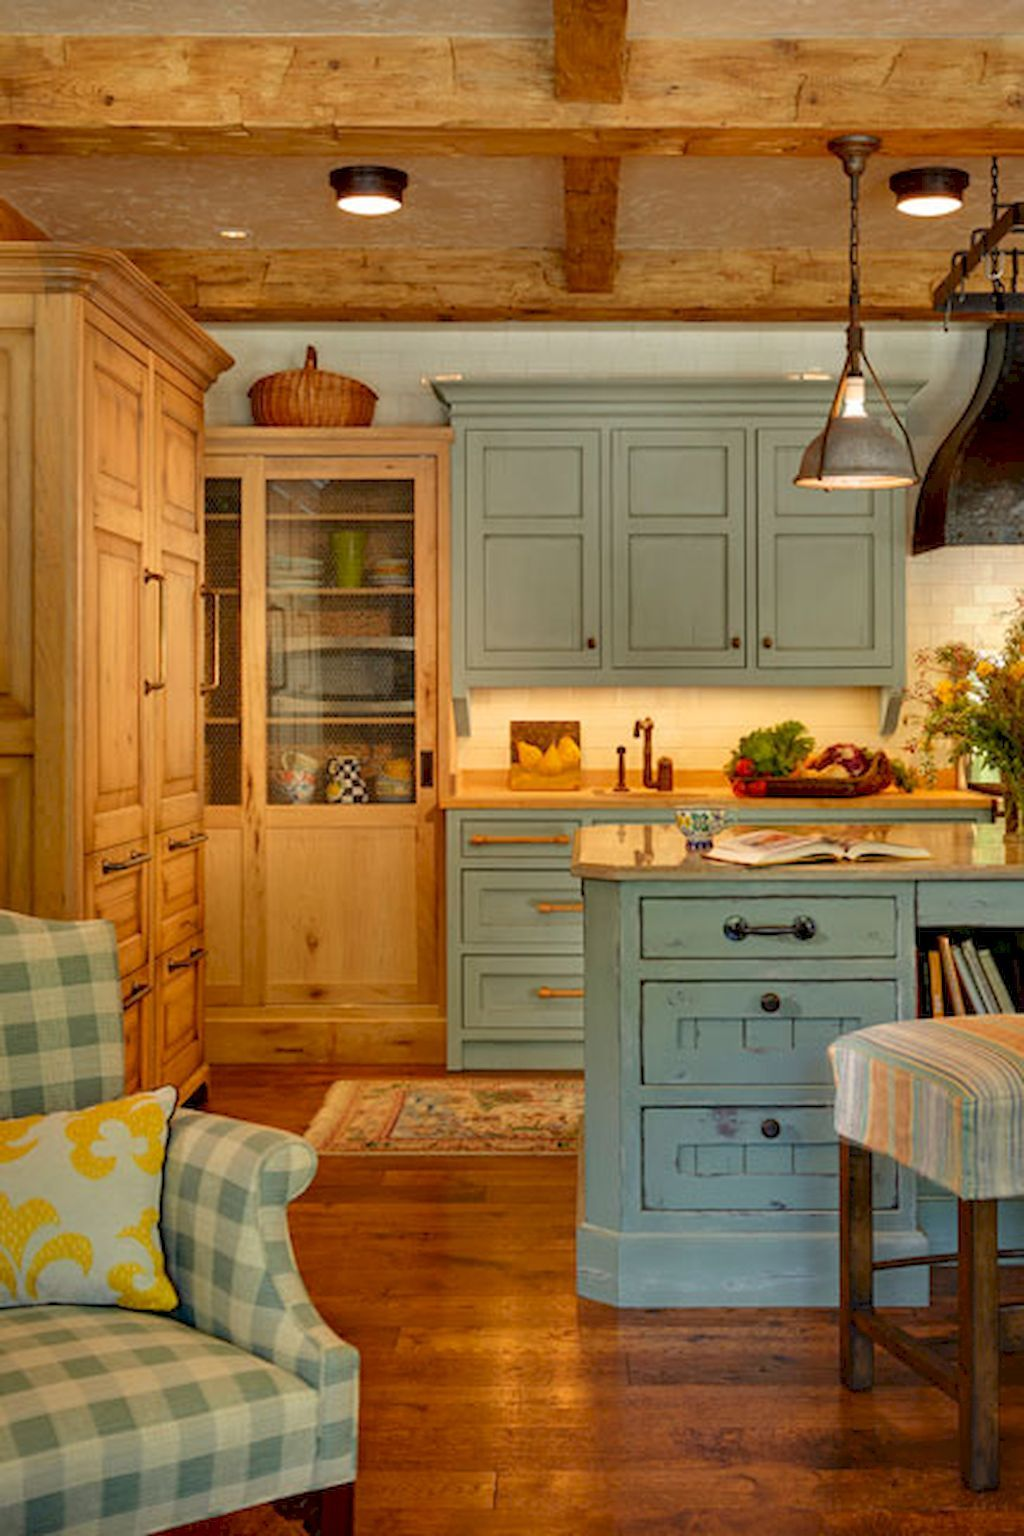 cool 90 rustic kitchen cabinets farmhouse style ideas https livingmarch com 90 rustic kitch on farmhouse kitchen cabinets id=66751